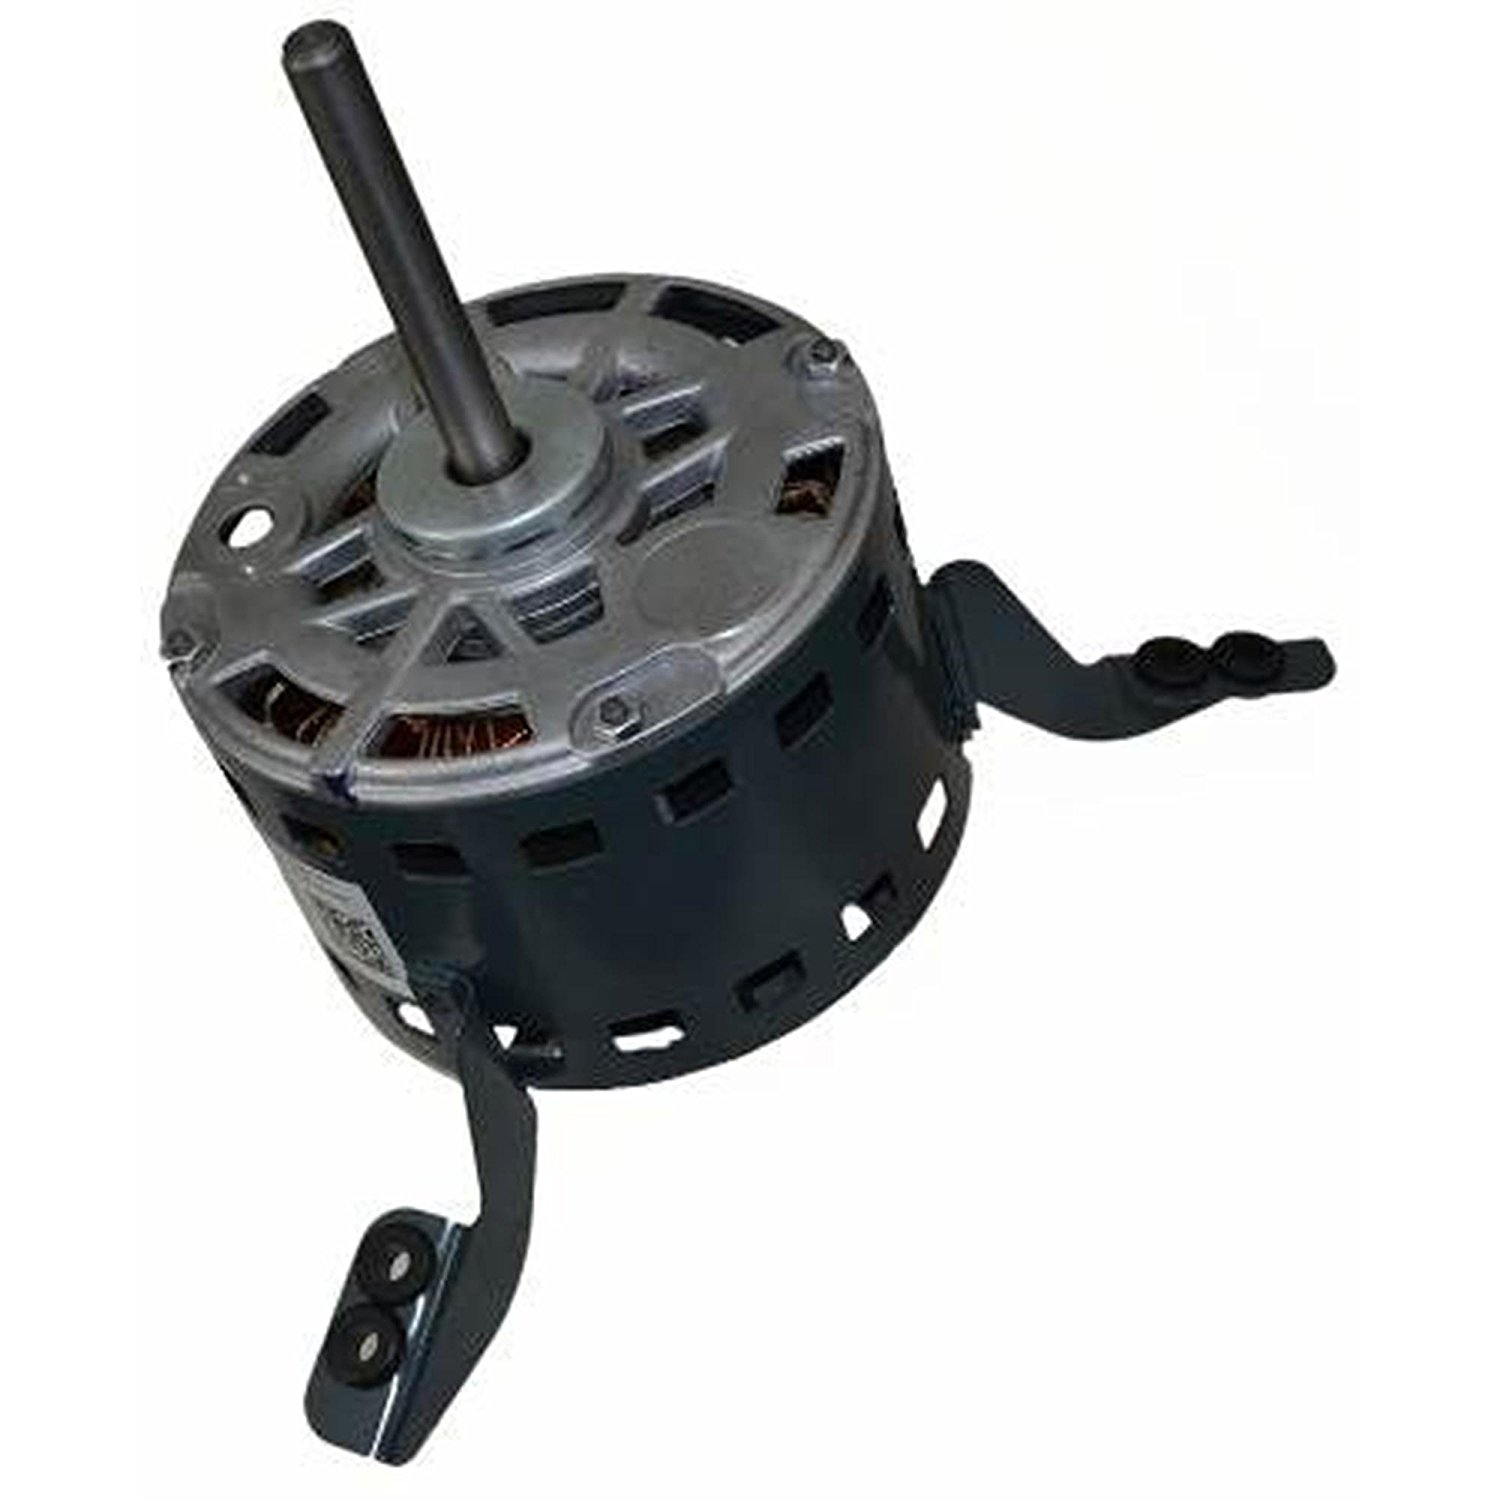 B1340021S - Goodman OEM Replacement Furnace Blower Motor 1/3 HP